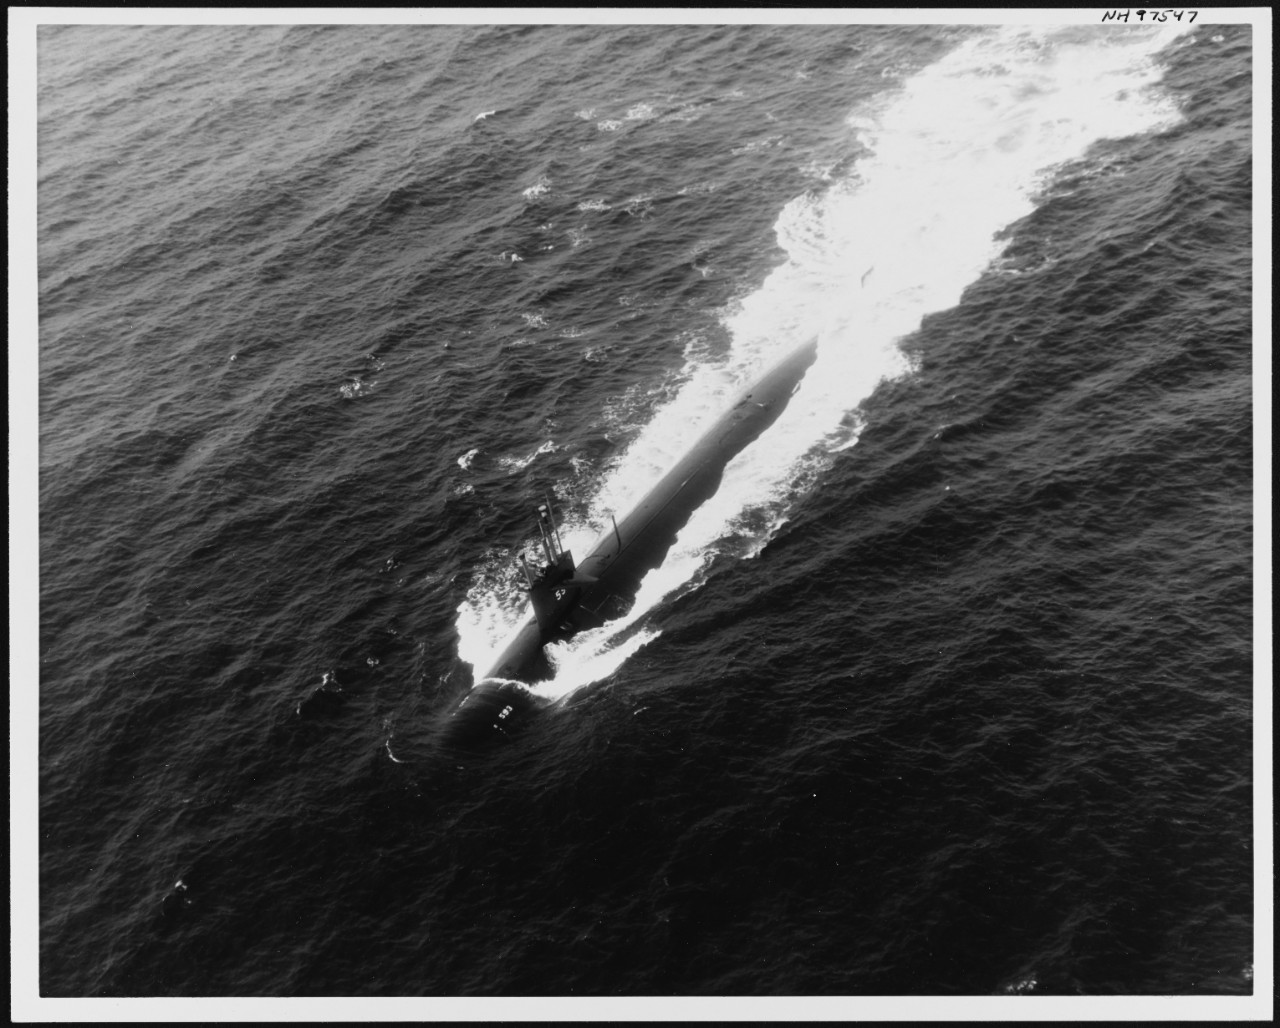 Photo #: NH 97547  USS Thresher (SSN-593)